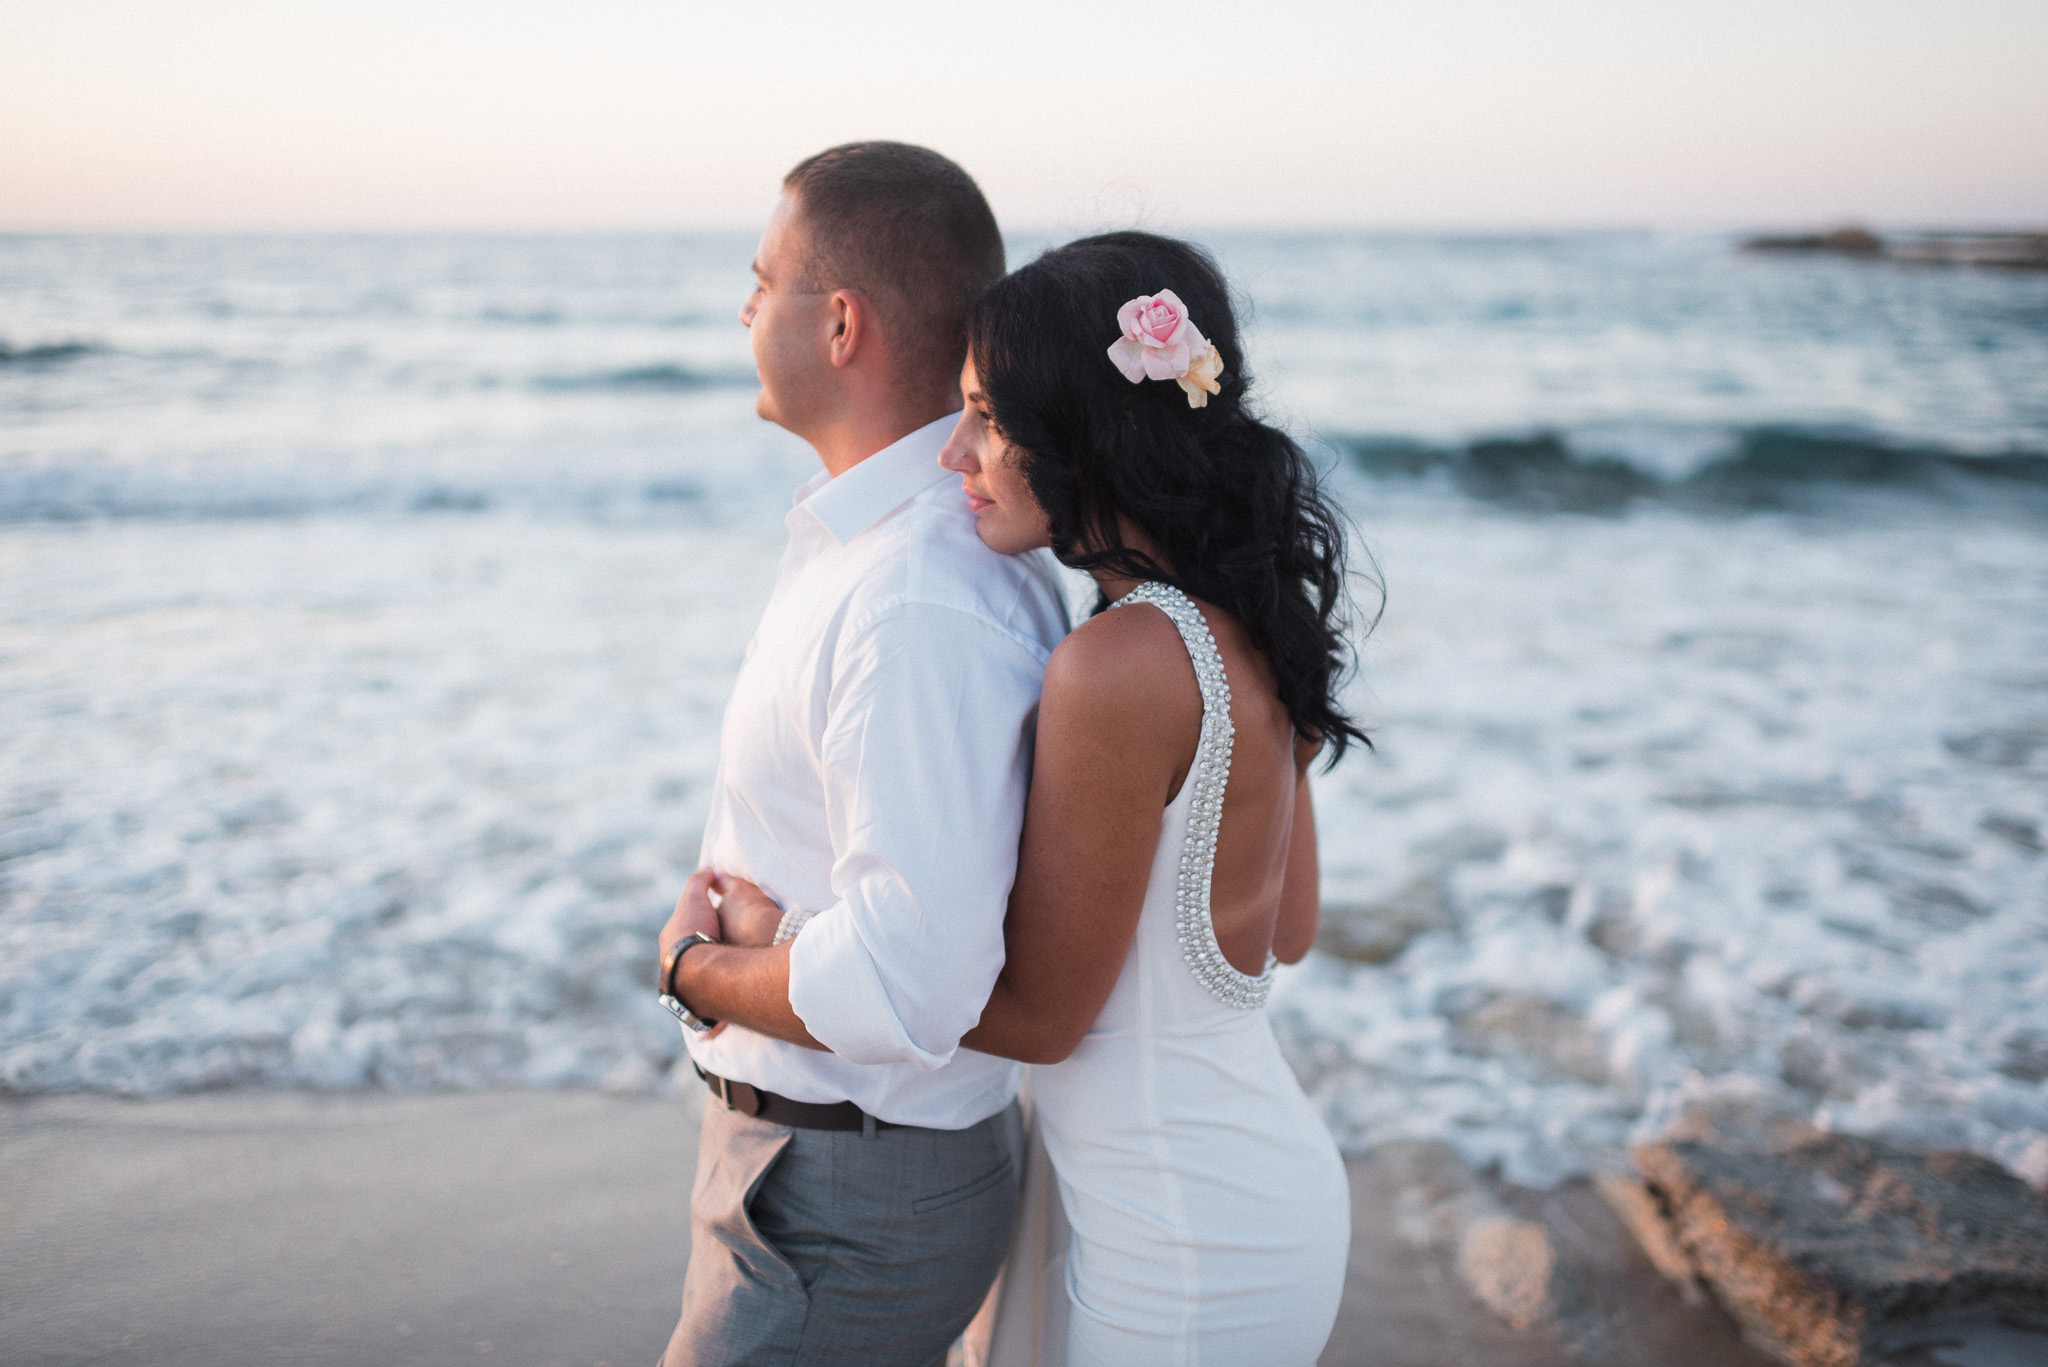 newlyweds photoshoot on Cretan beach